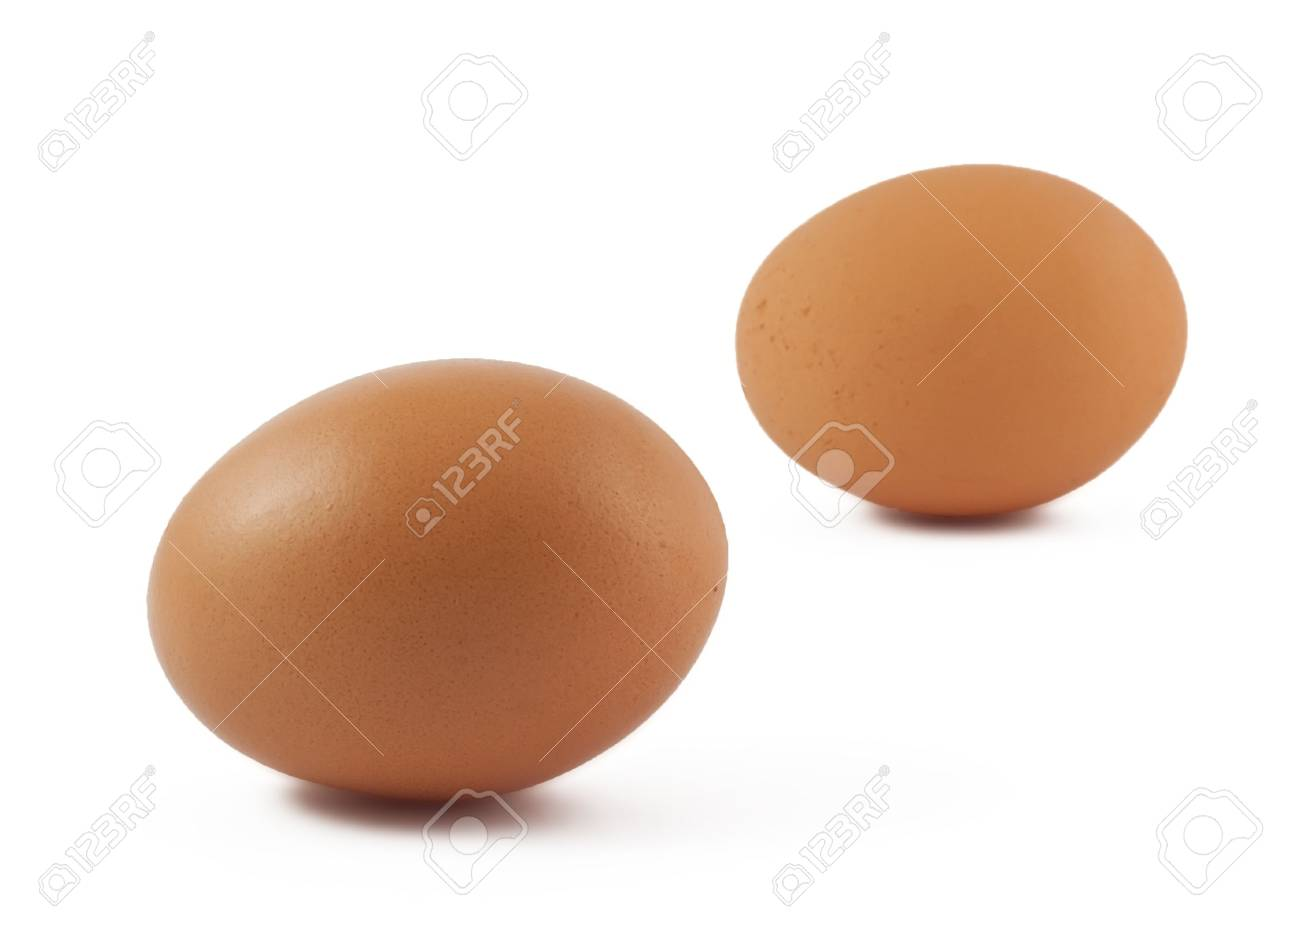 Two brown eggs isolated on white background Stock Photo - 8138270